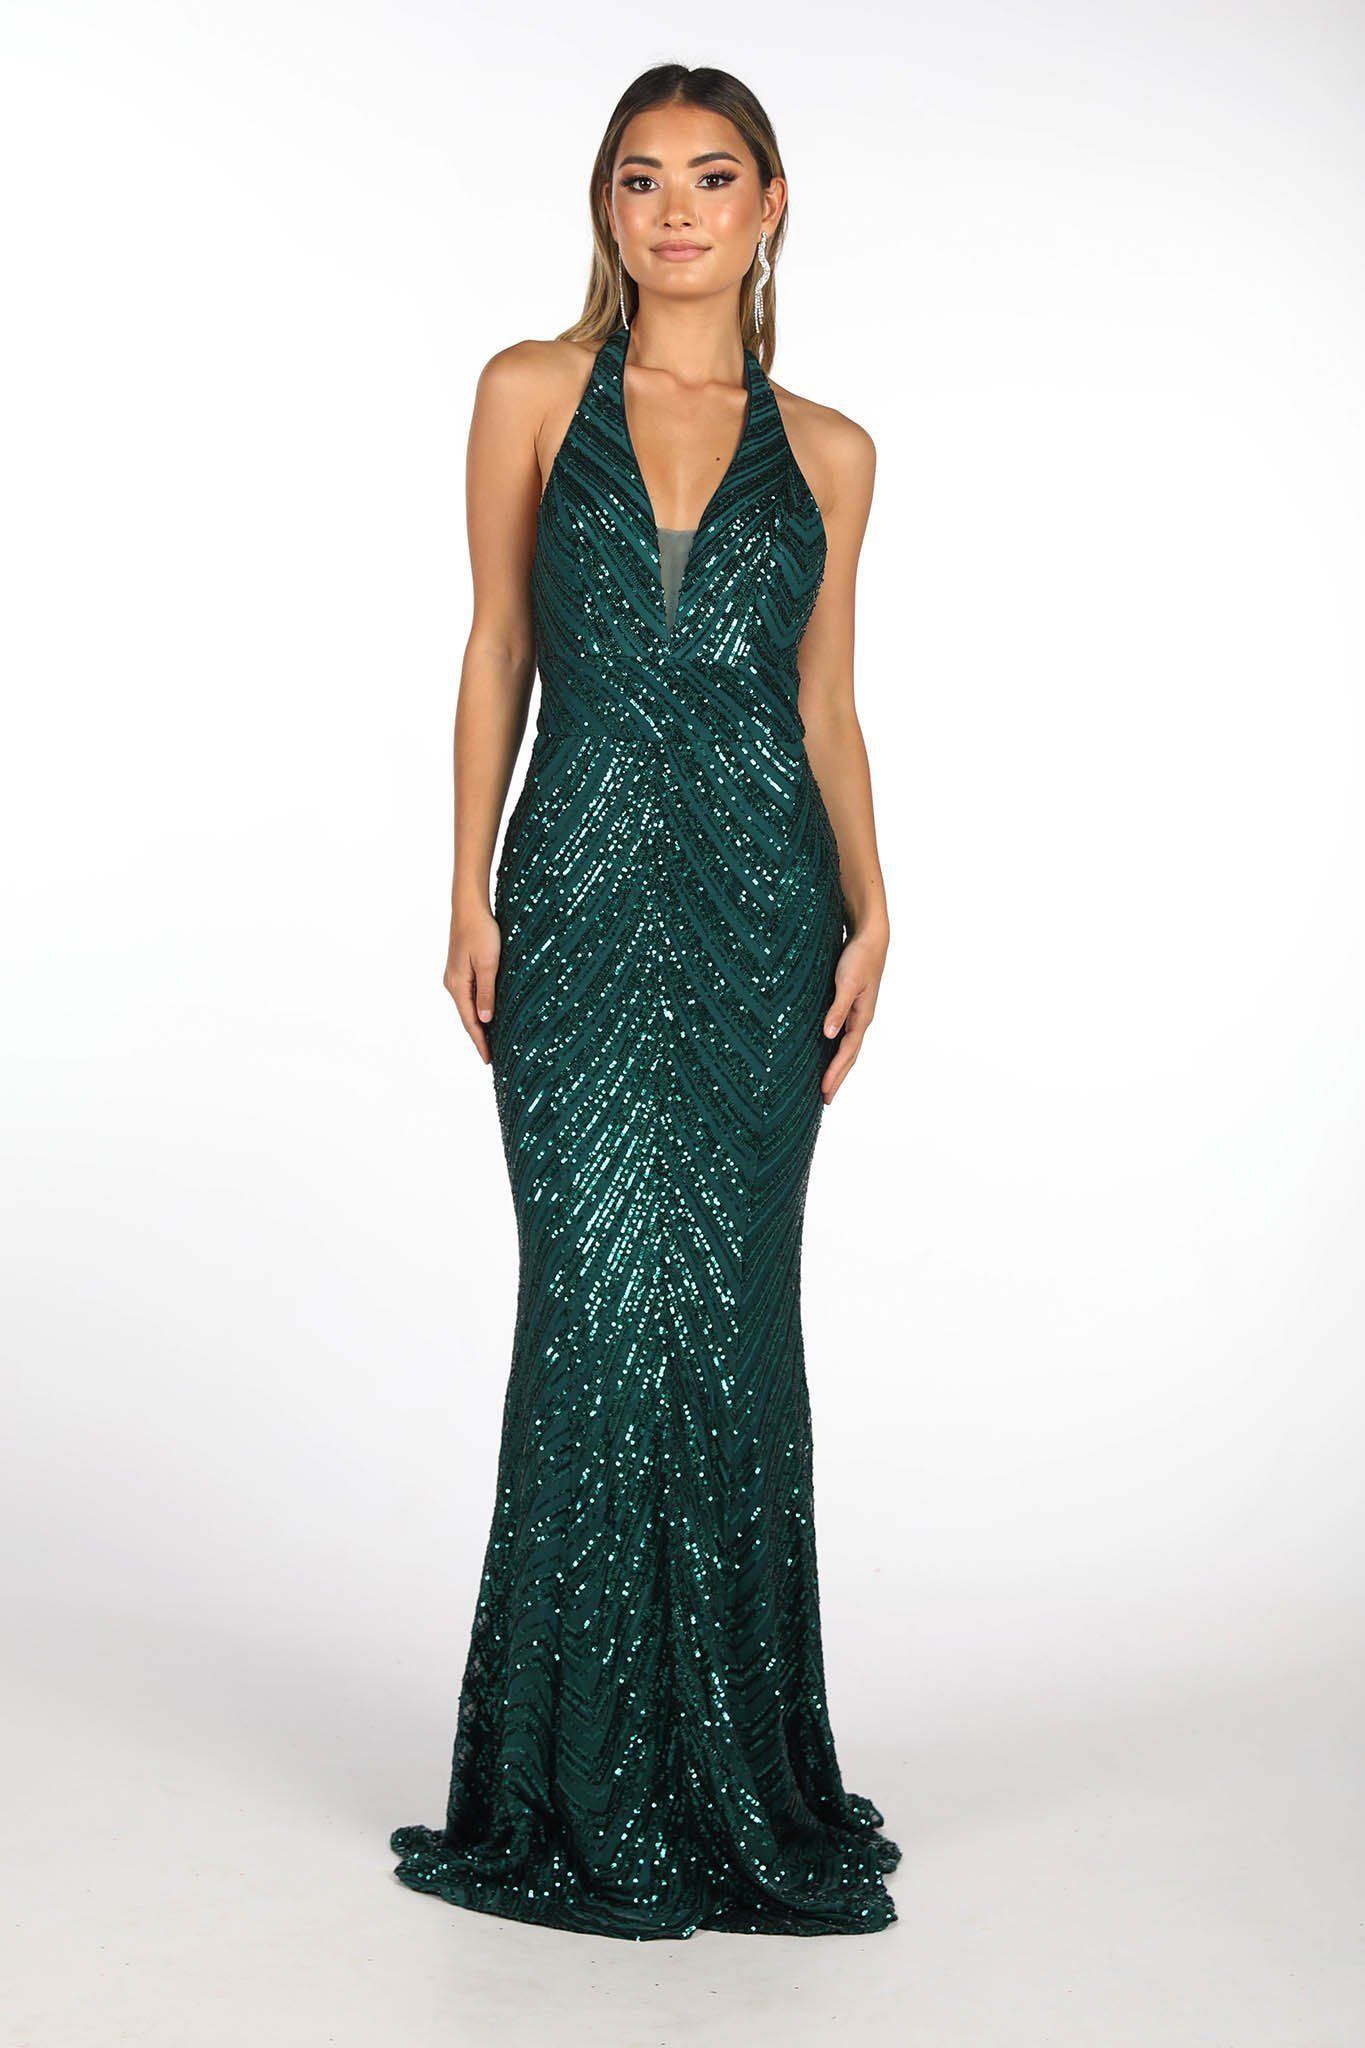 Emerald Green Full Length Sequin Evening Gown featuring Halterneck Design with Mesh Insert at bust and Open Back